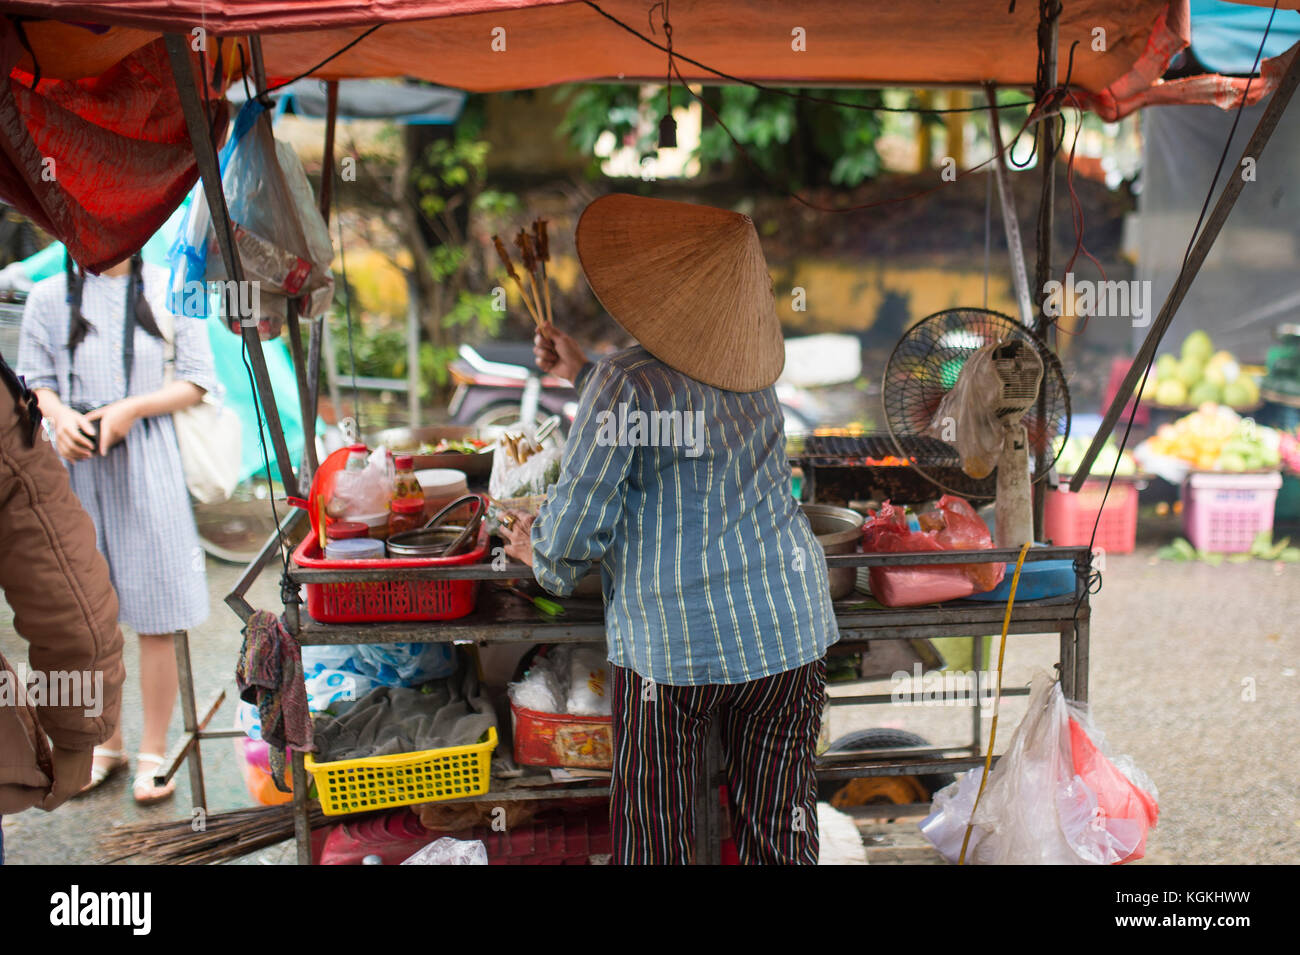 -Selective focus- Unidentified woman with typical vietnamese conical hats sell fresh vegetables and meat skewers on a street market in Hoi An, Vietnam Stock Photo